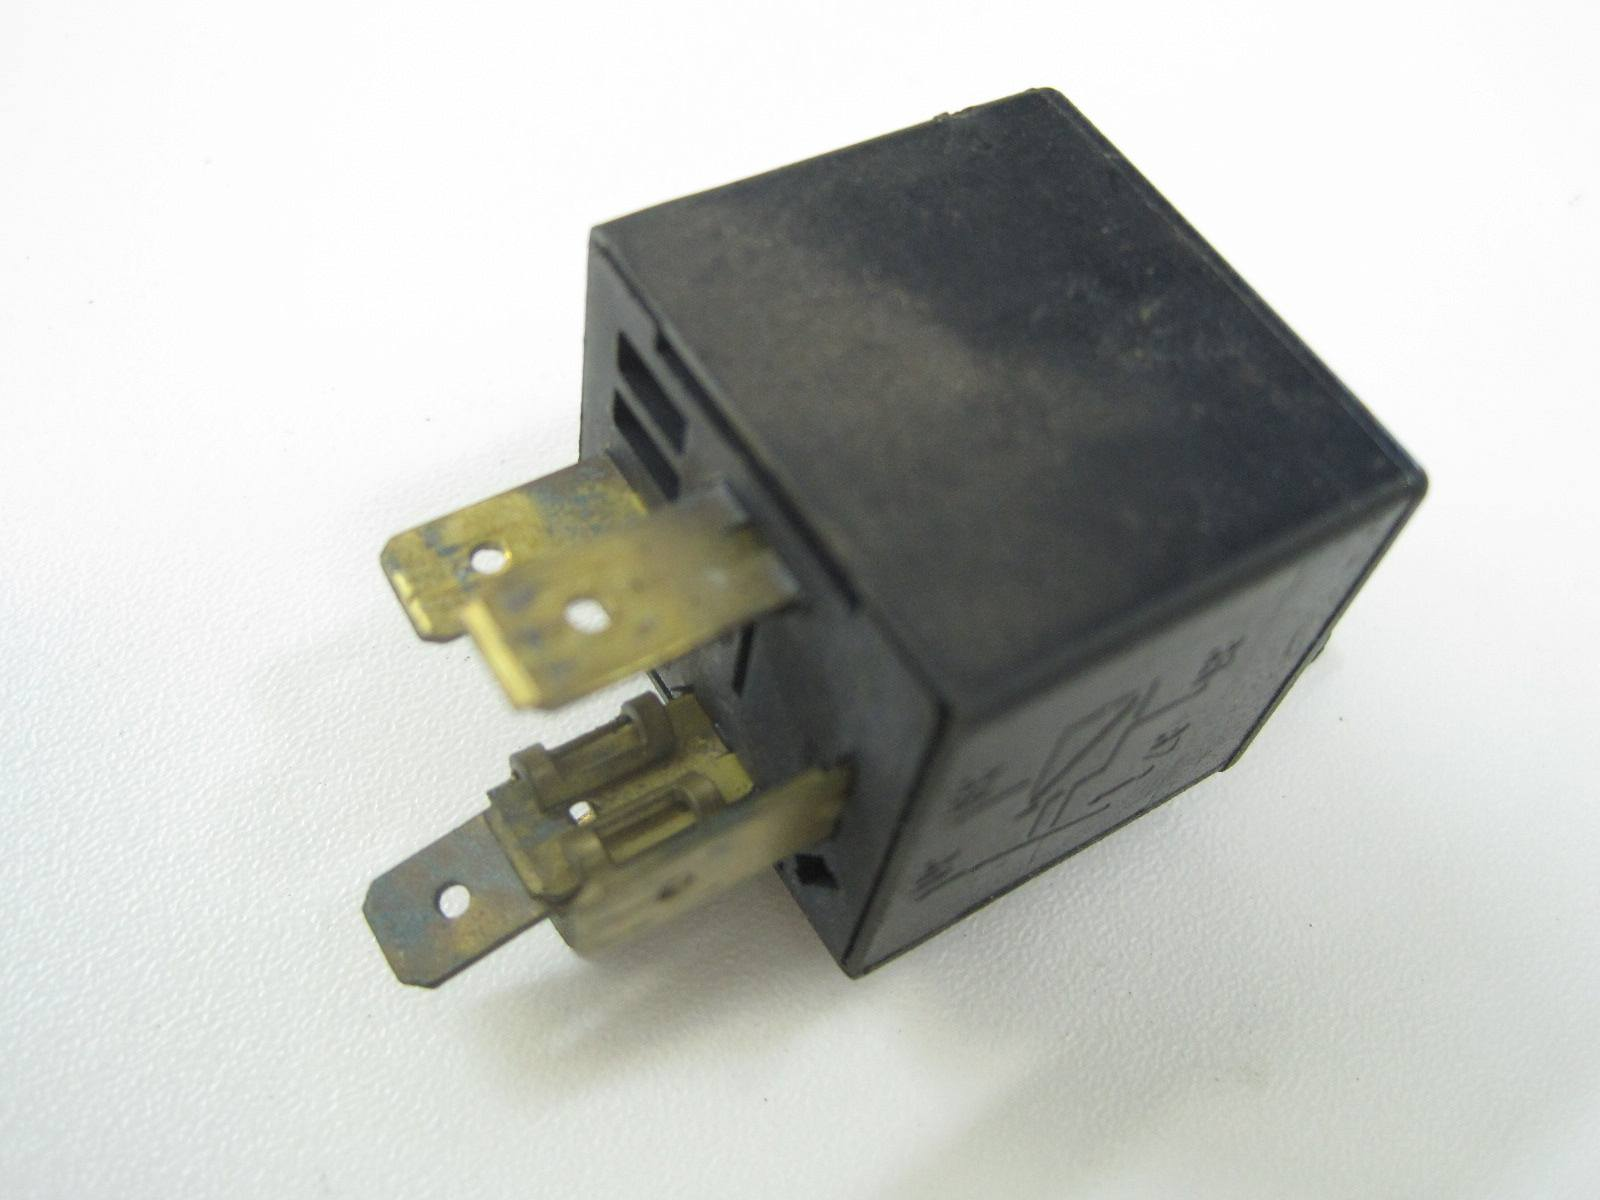 More information can be found in the german description